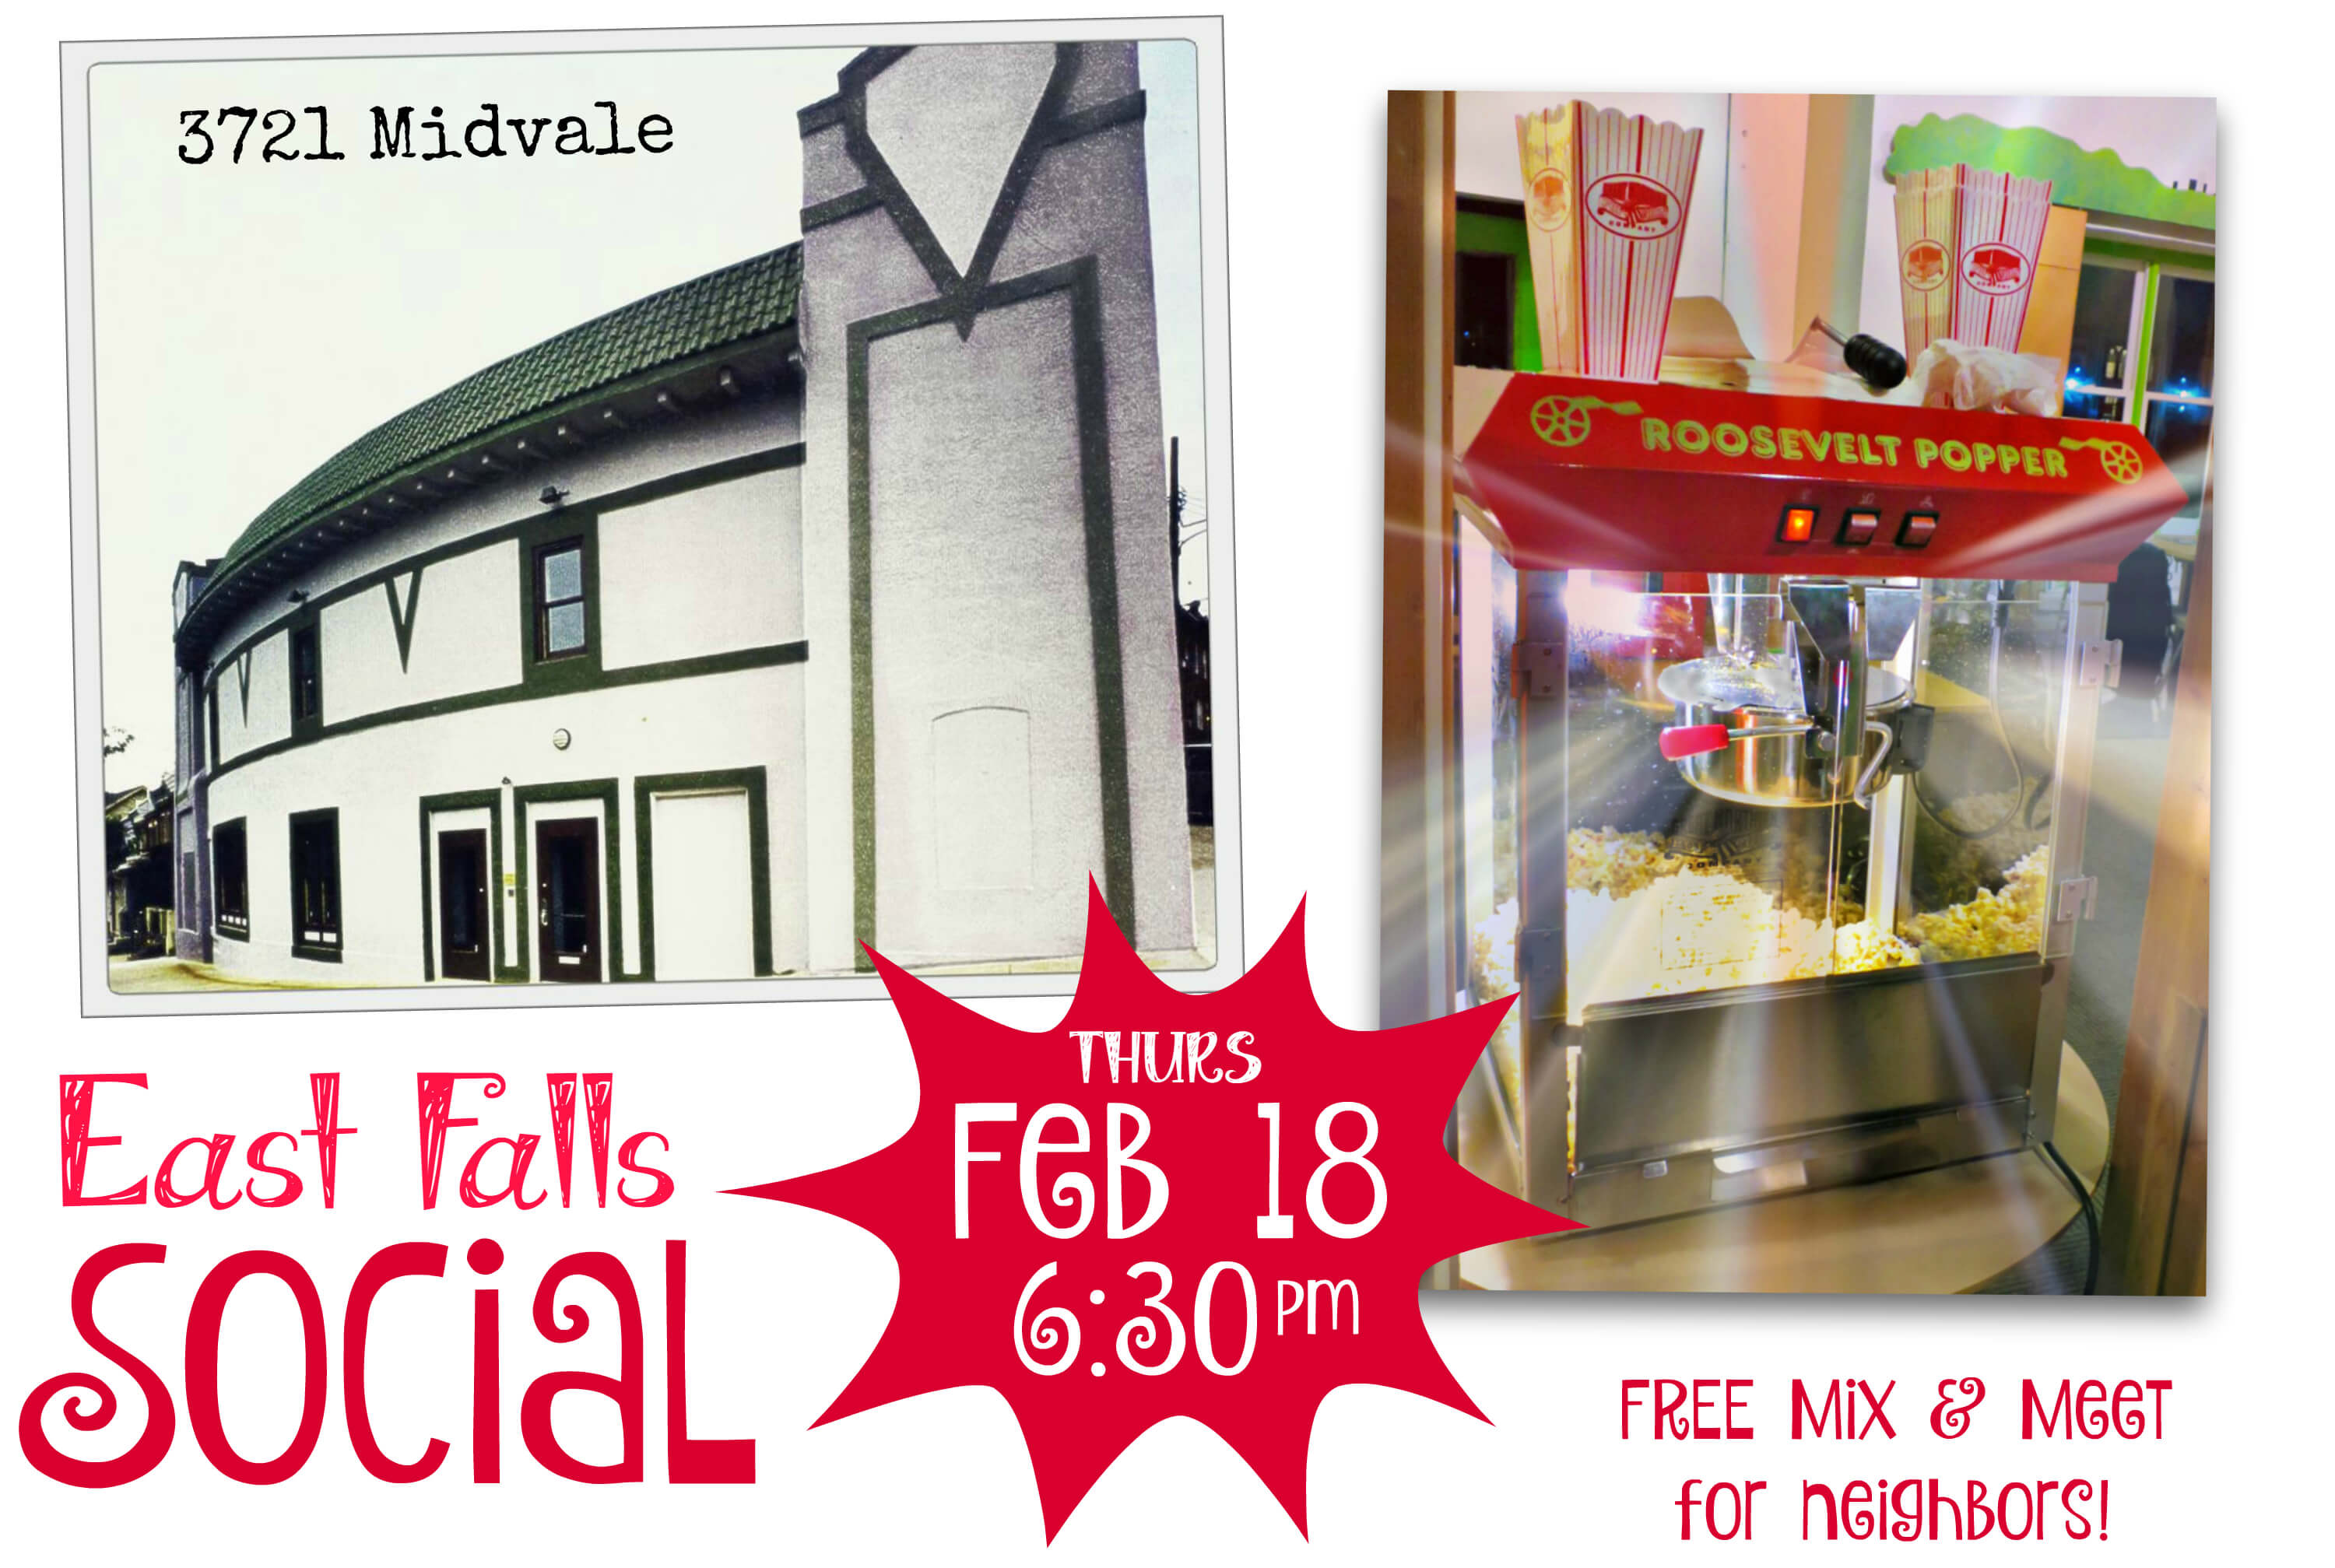 Eastfallslocal collage popcorn next meeting FREE MIX AND MEET